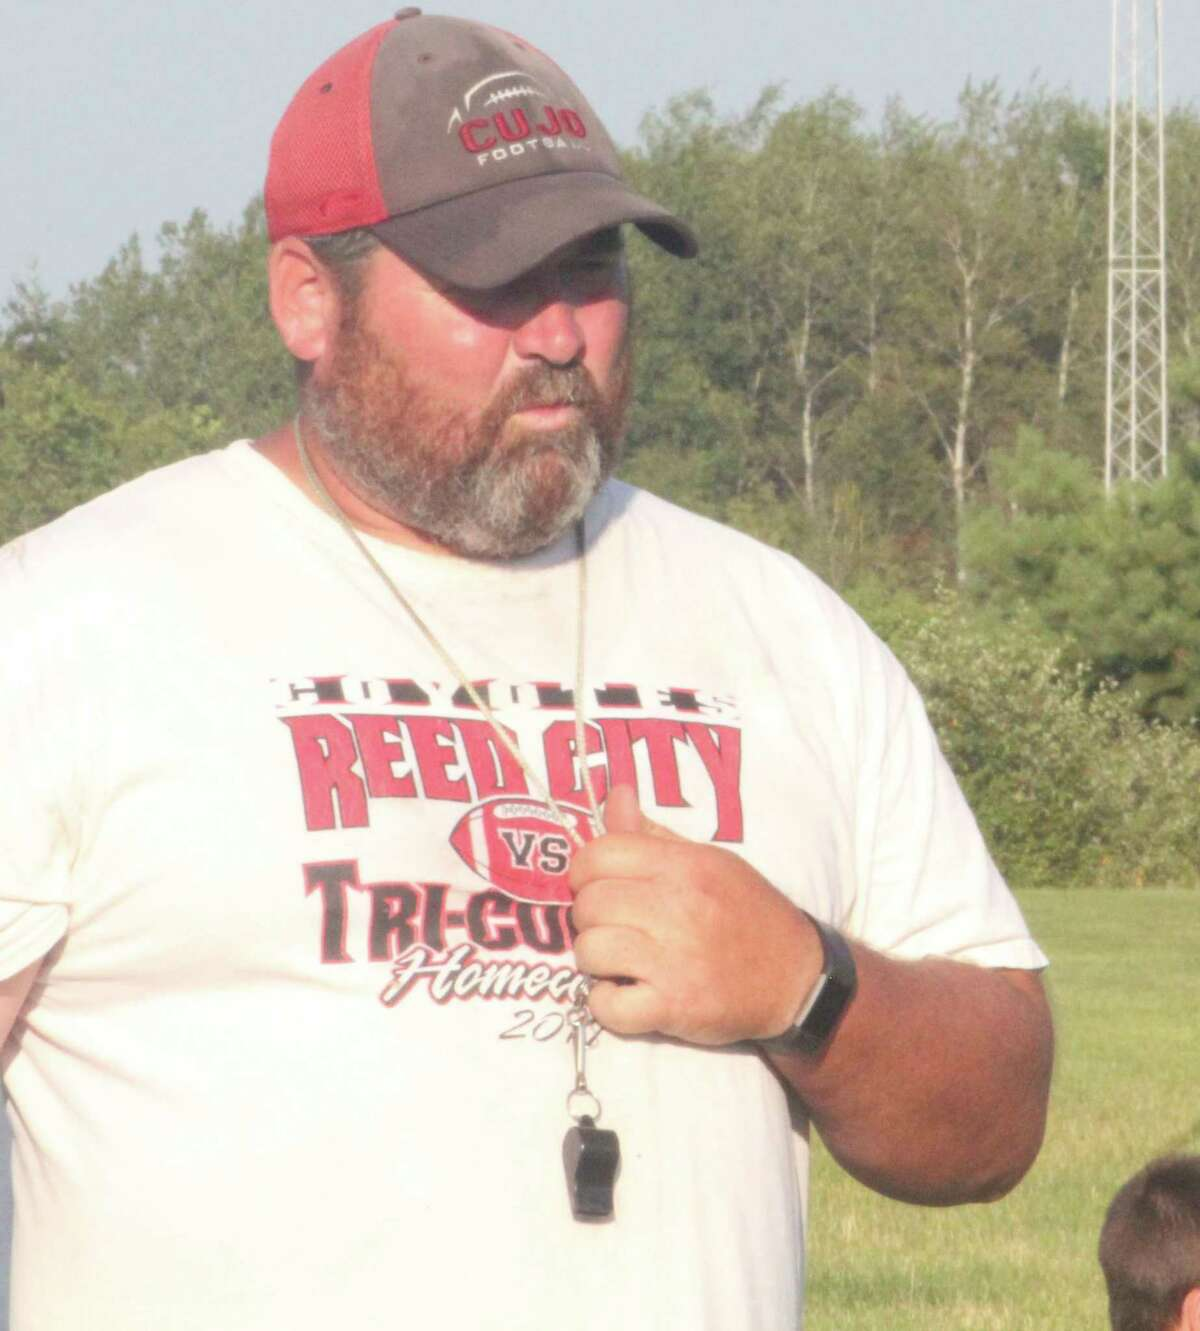 Football practices will resume on Monday, and Reed City coach Scott Shankel is trying to figure out how to mix it in with holiday vacations. (Pioneer file photo)